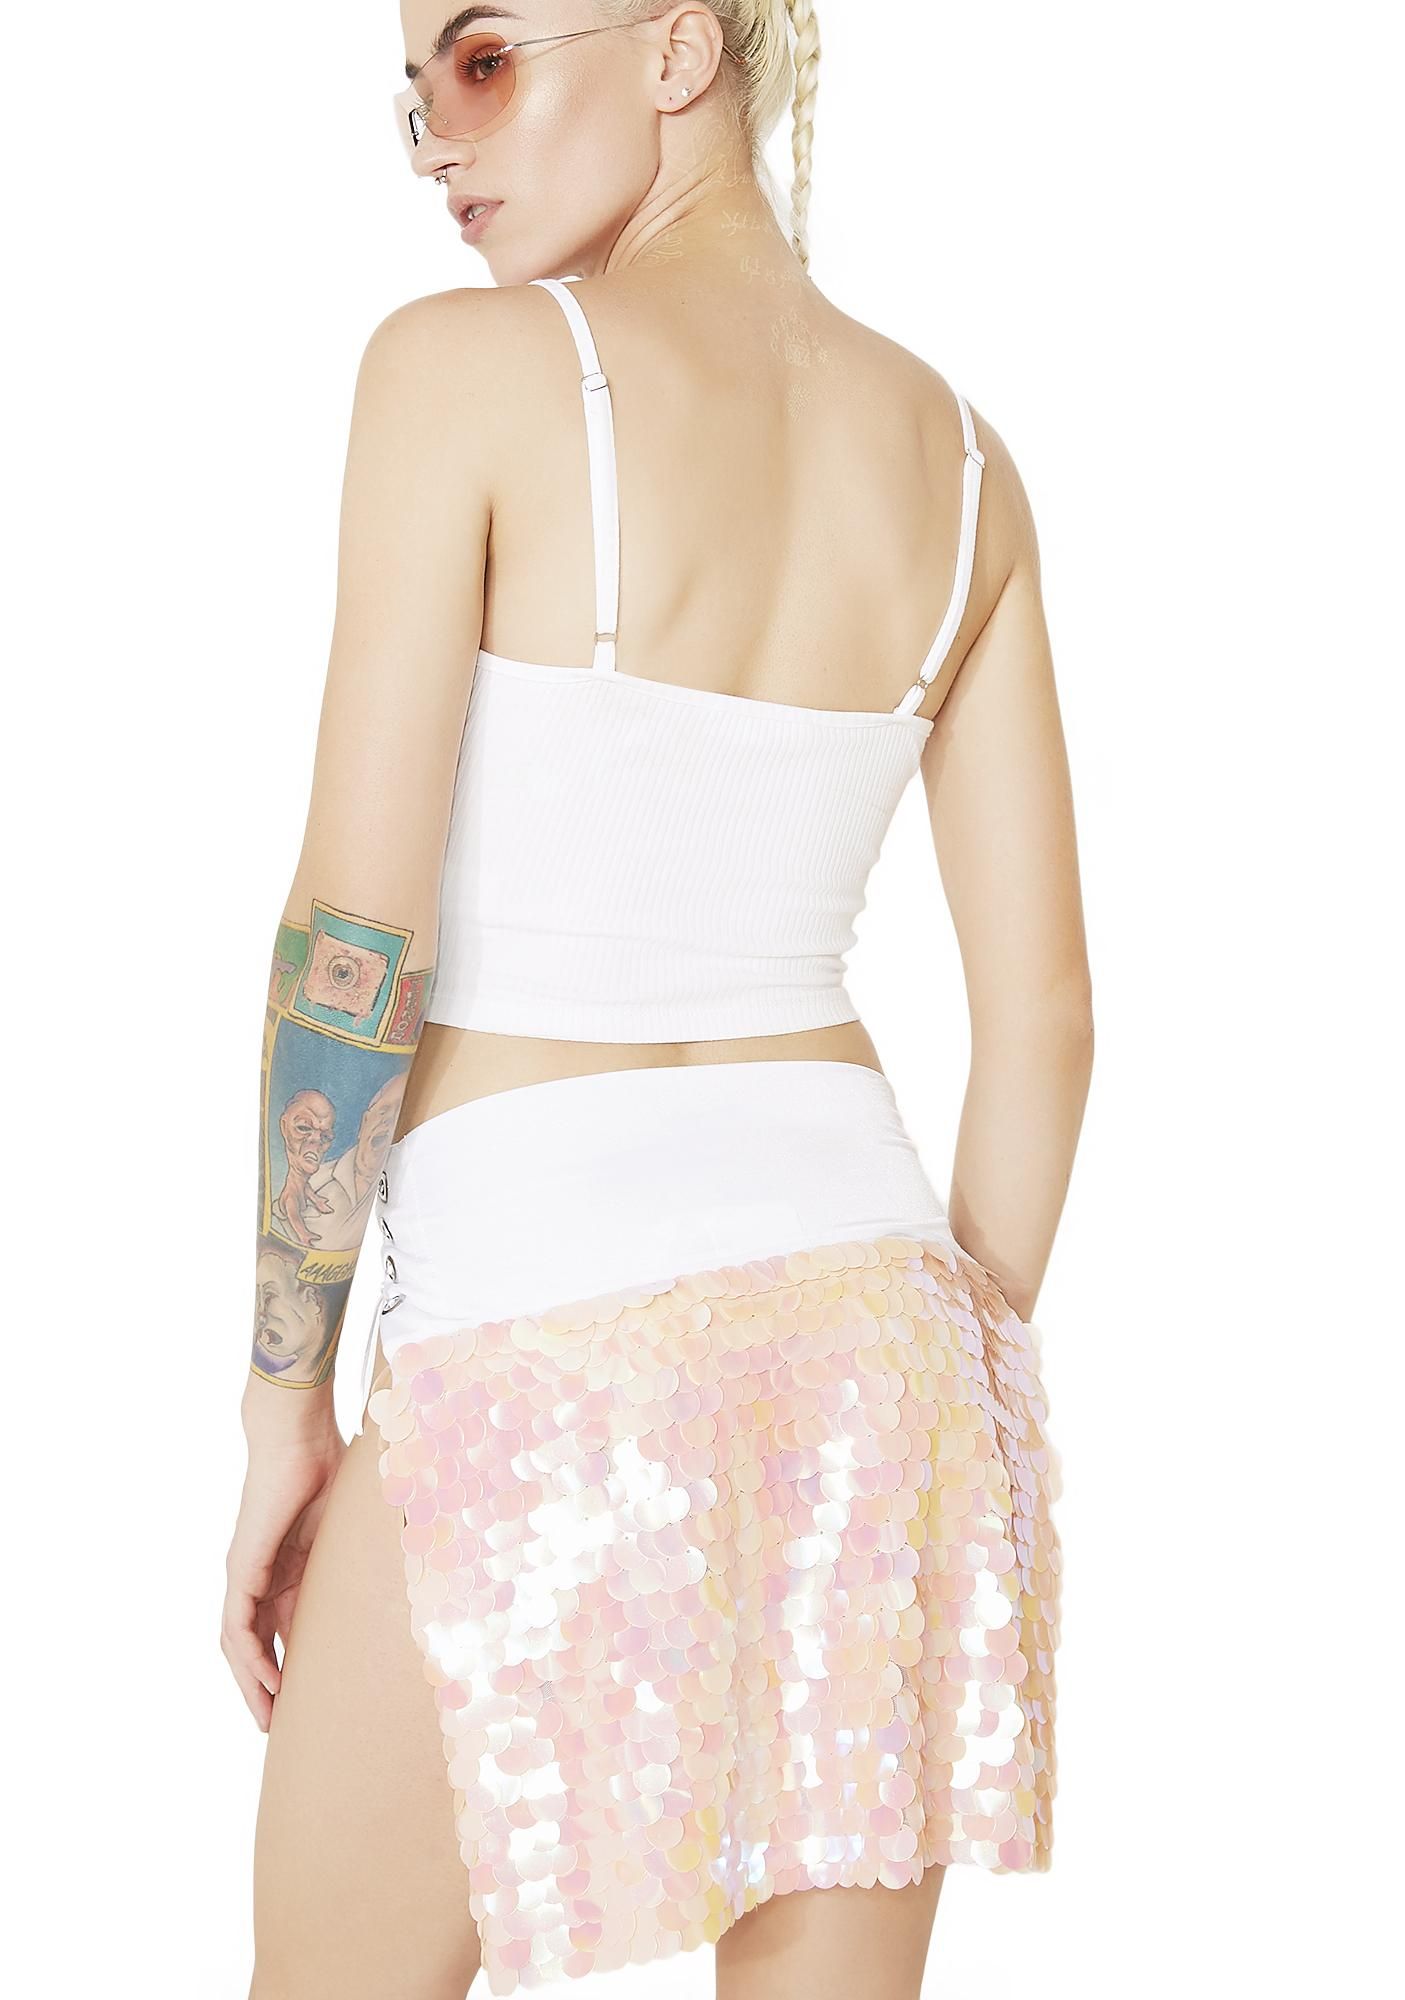 The Lyte Couture Sunset Gypsy Mini Mermaid Panel Skirt